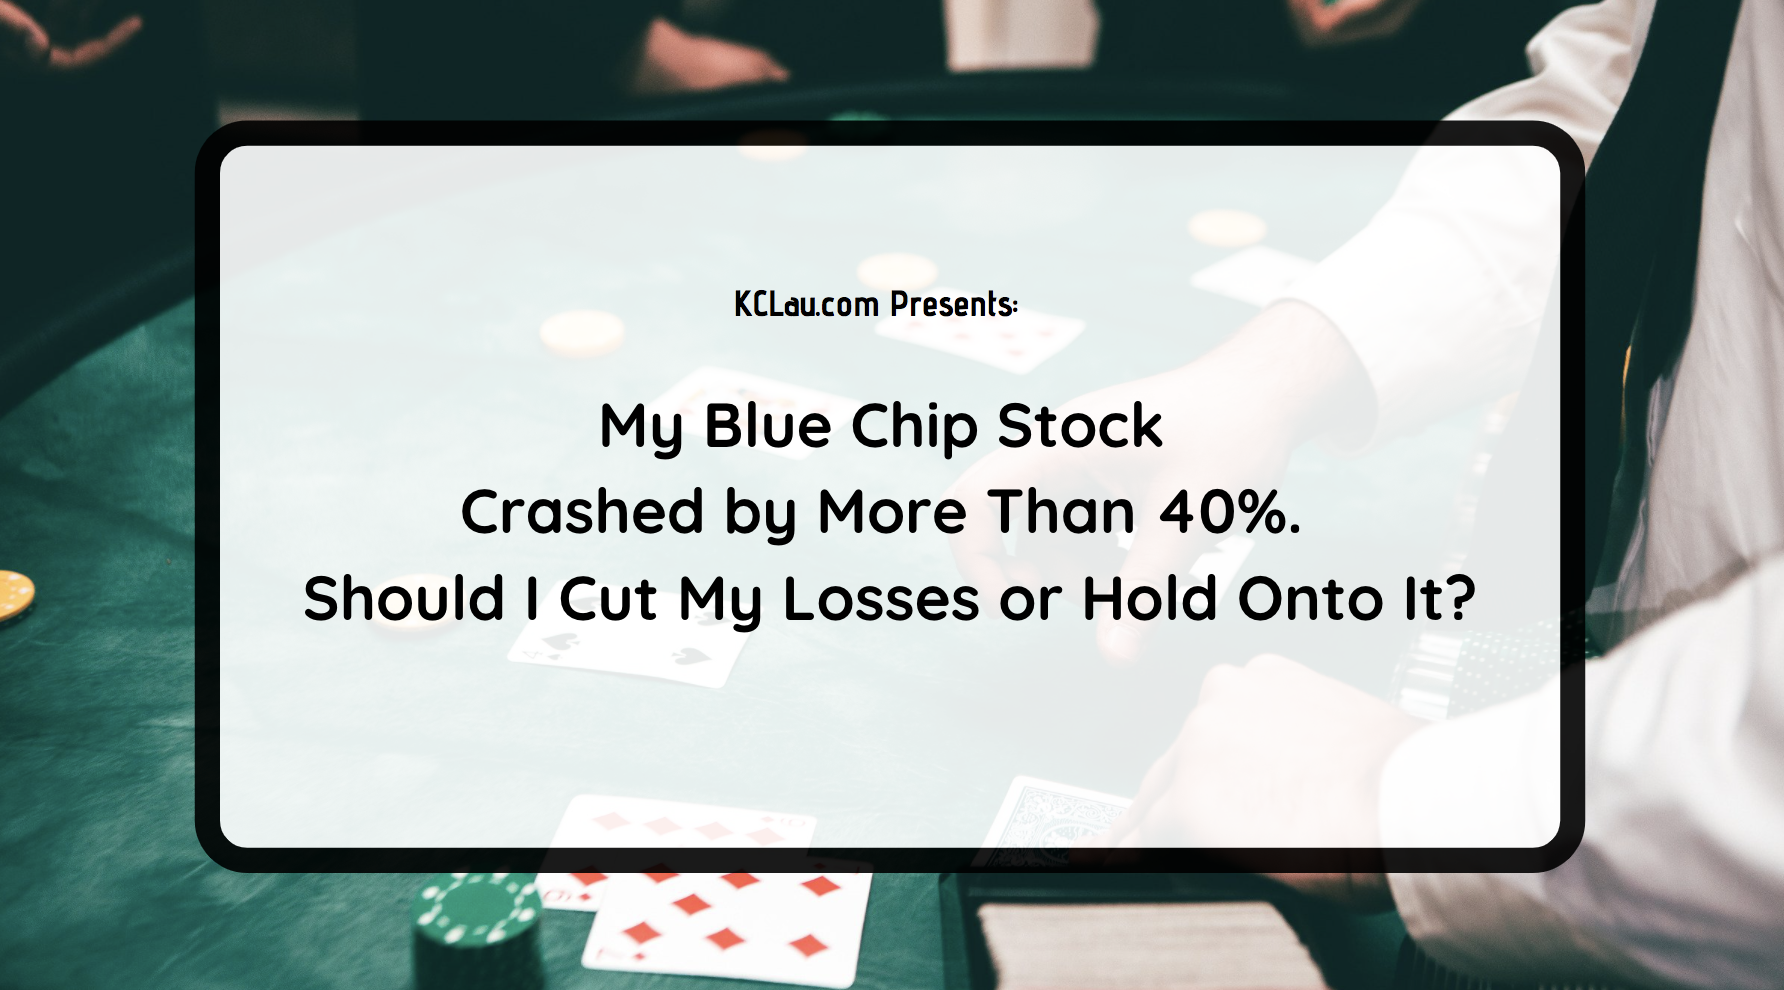 My Blue Chip Stock Crashed by More Than 40%. Should I Cut My Losses or Hold Onto It?